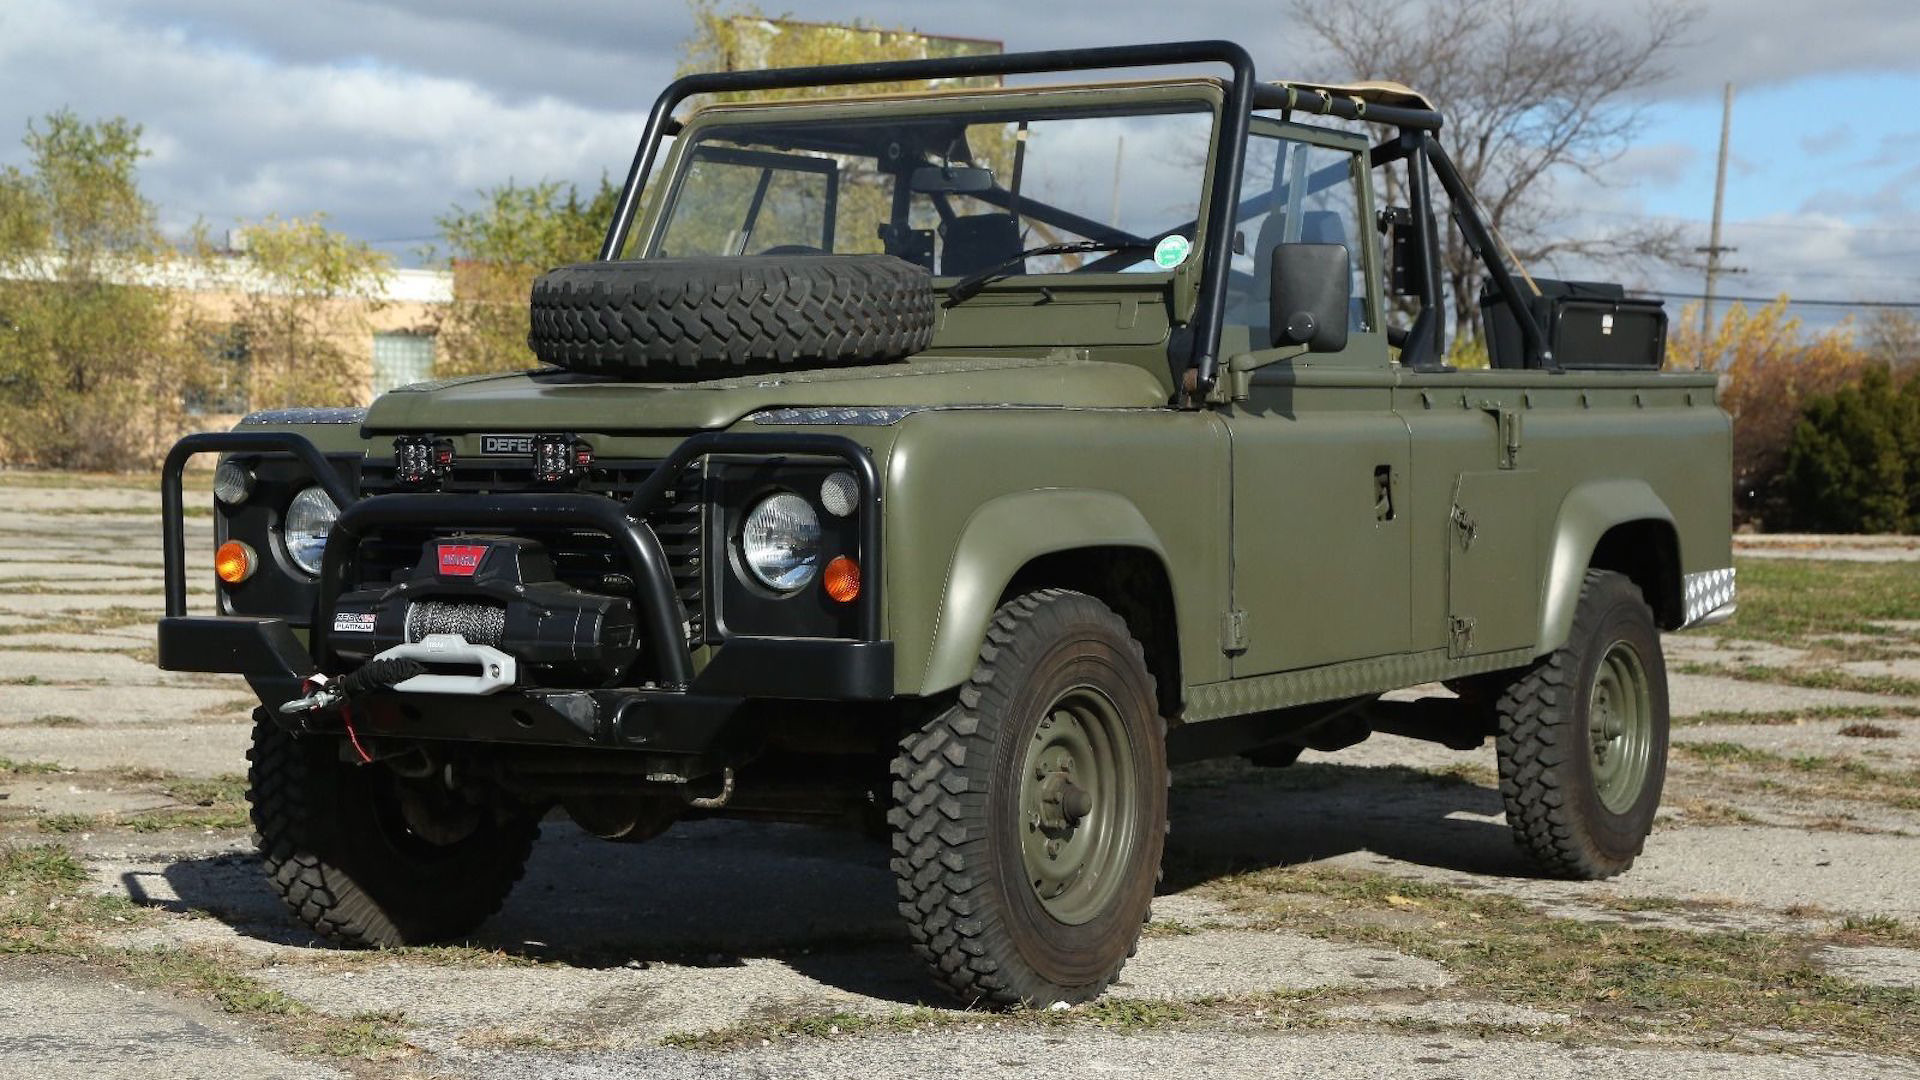 Collection Land Rover Military Vehicles